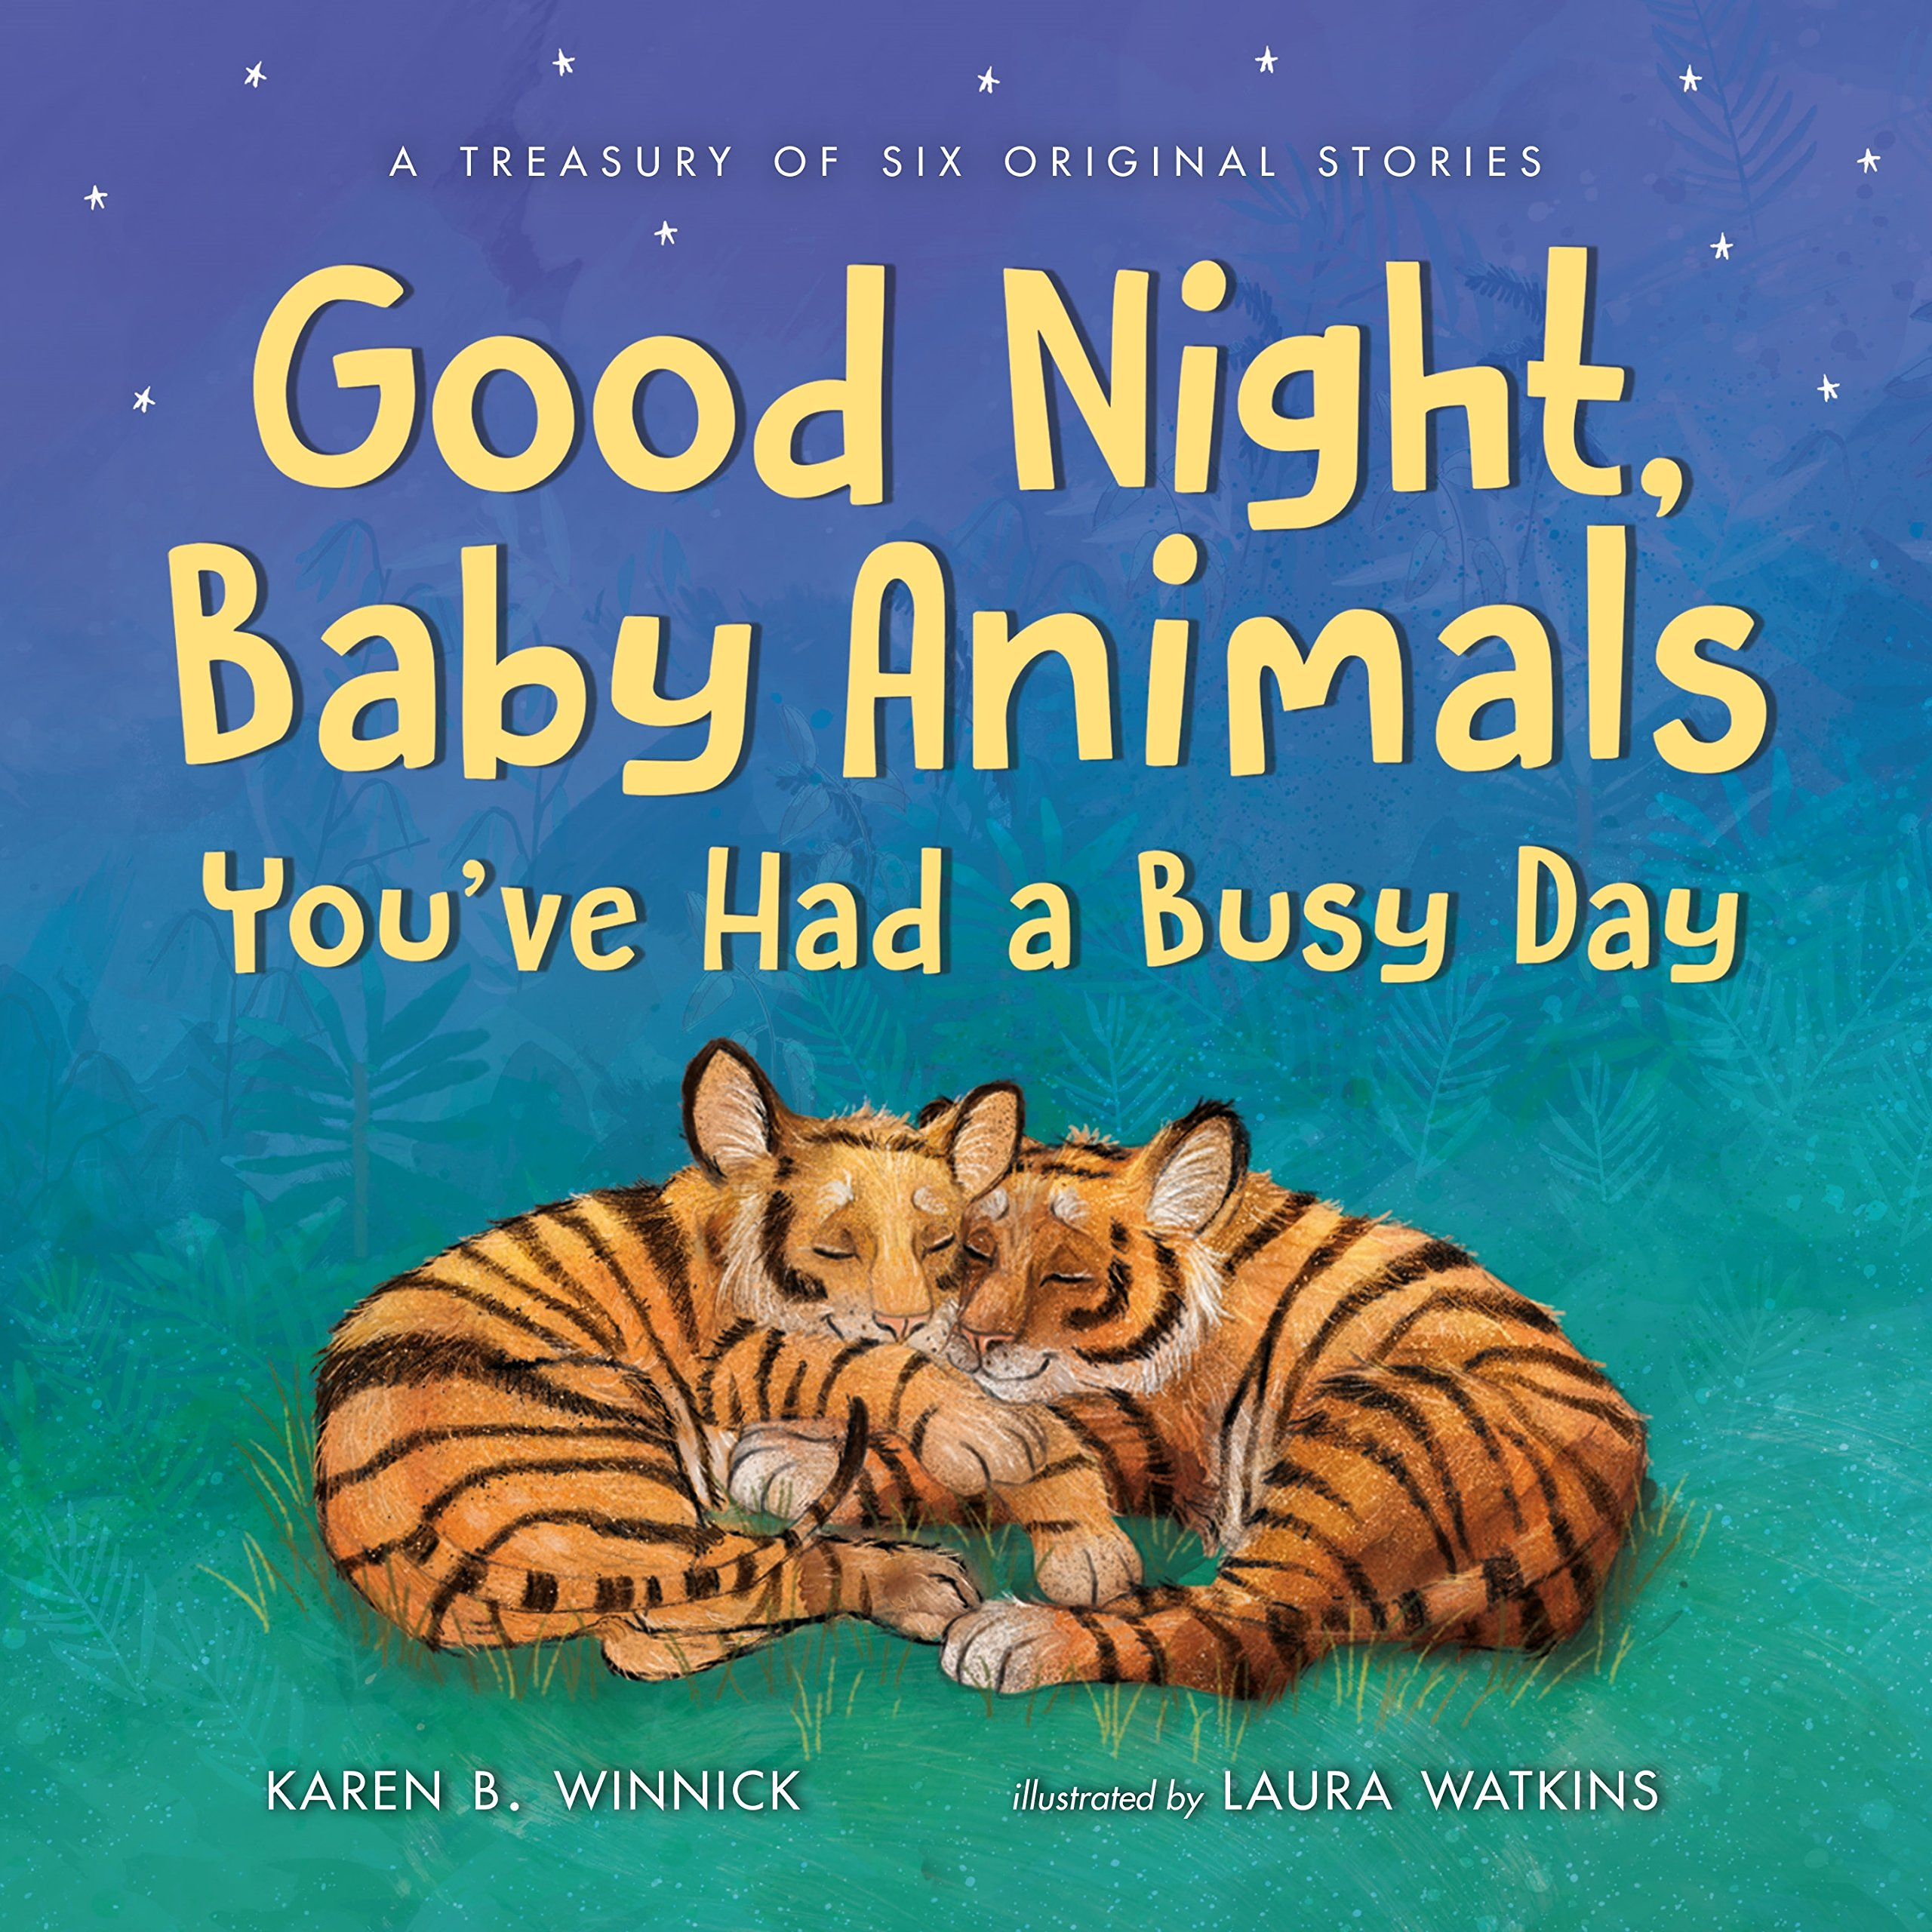 Good Night, Baby Animals You've Had a Busy Day: A Treasury of Six Original Stories by Henry Holt and Co. (BYR) (Image #1)